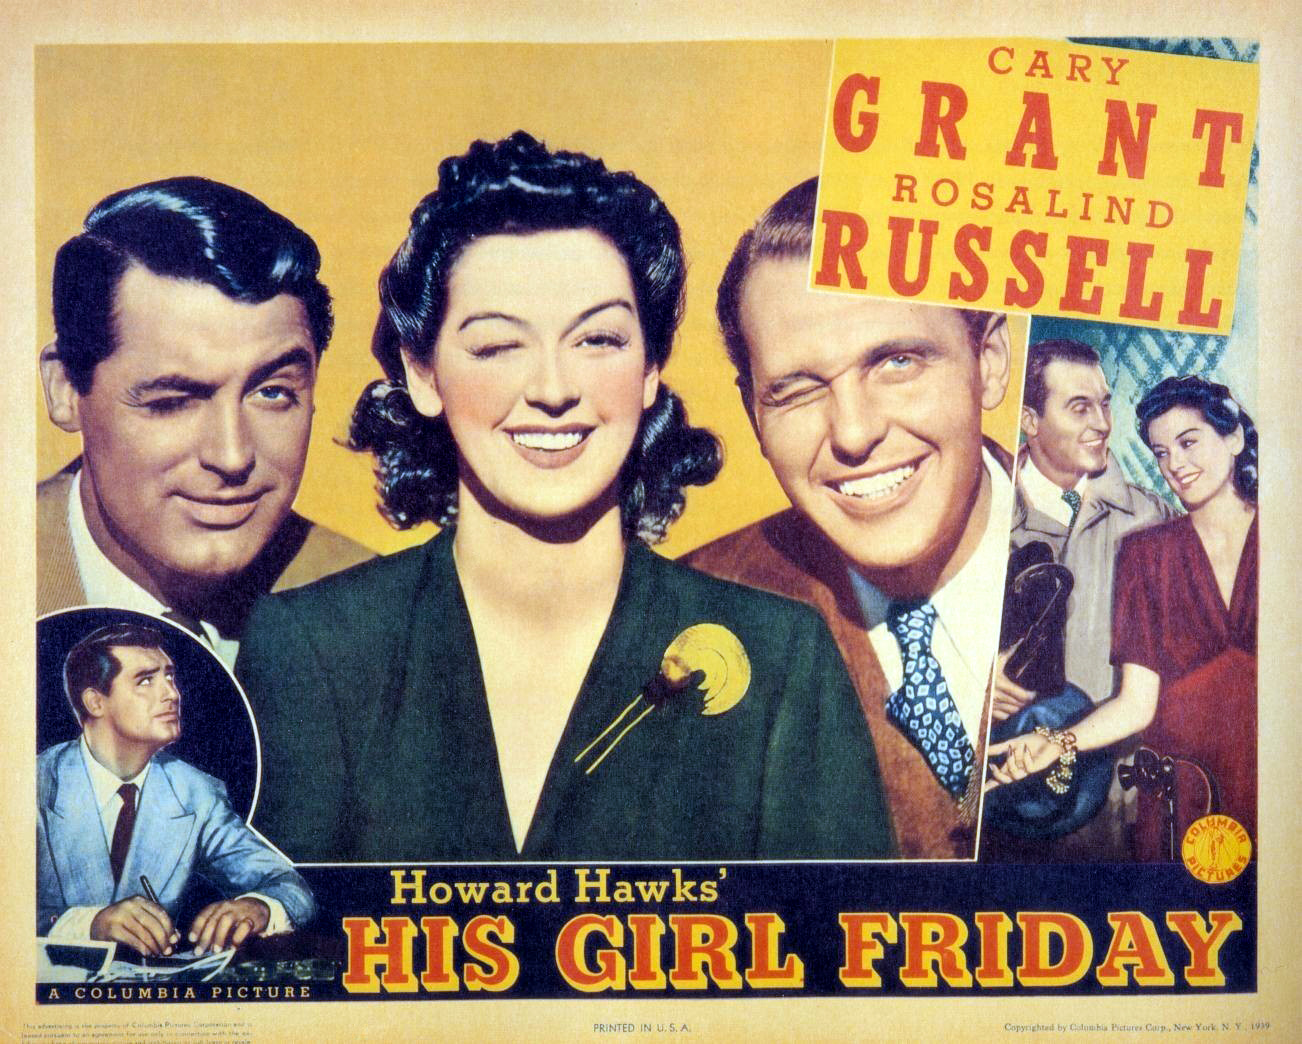 UT Department of Theatre and Film presents His Girl Friday as part of its First Friday on Film Series